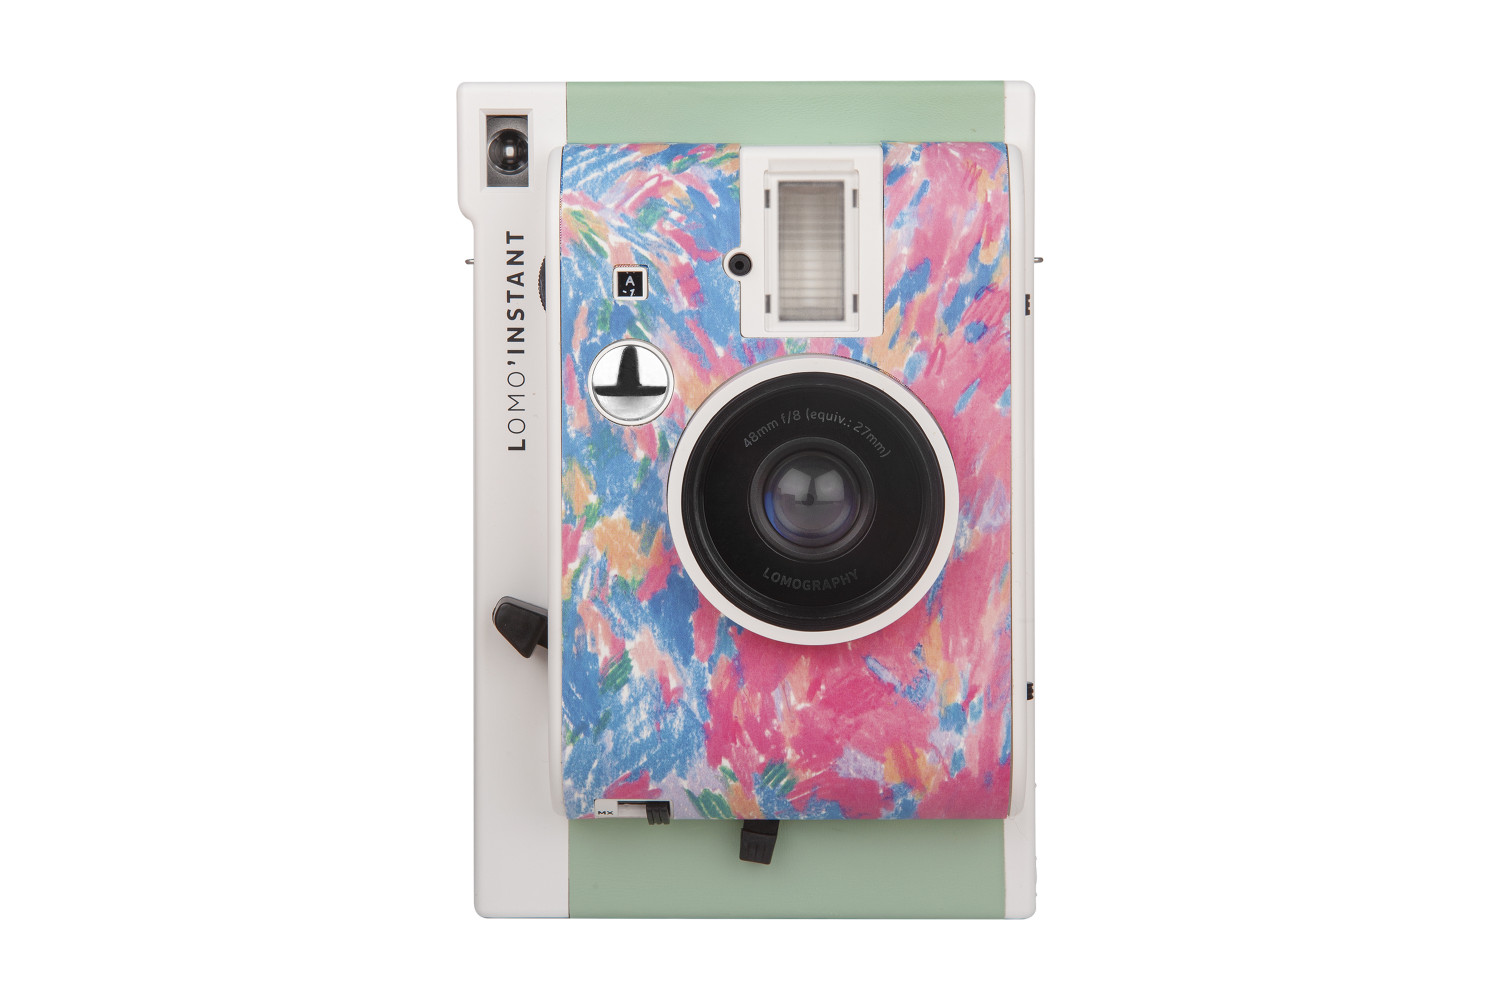 Lomo'Instant Camera - Song's Palette